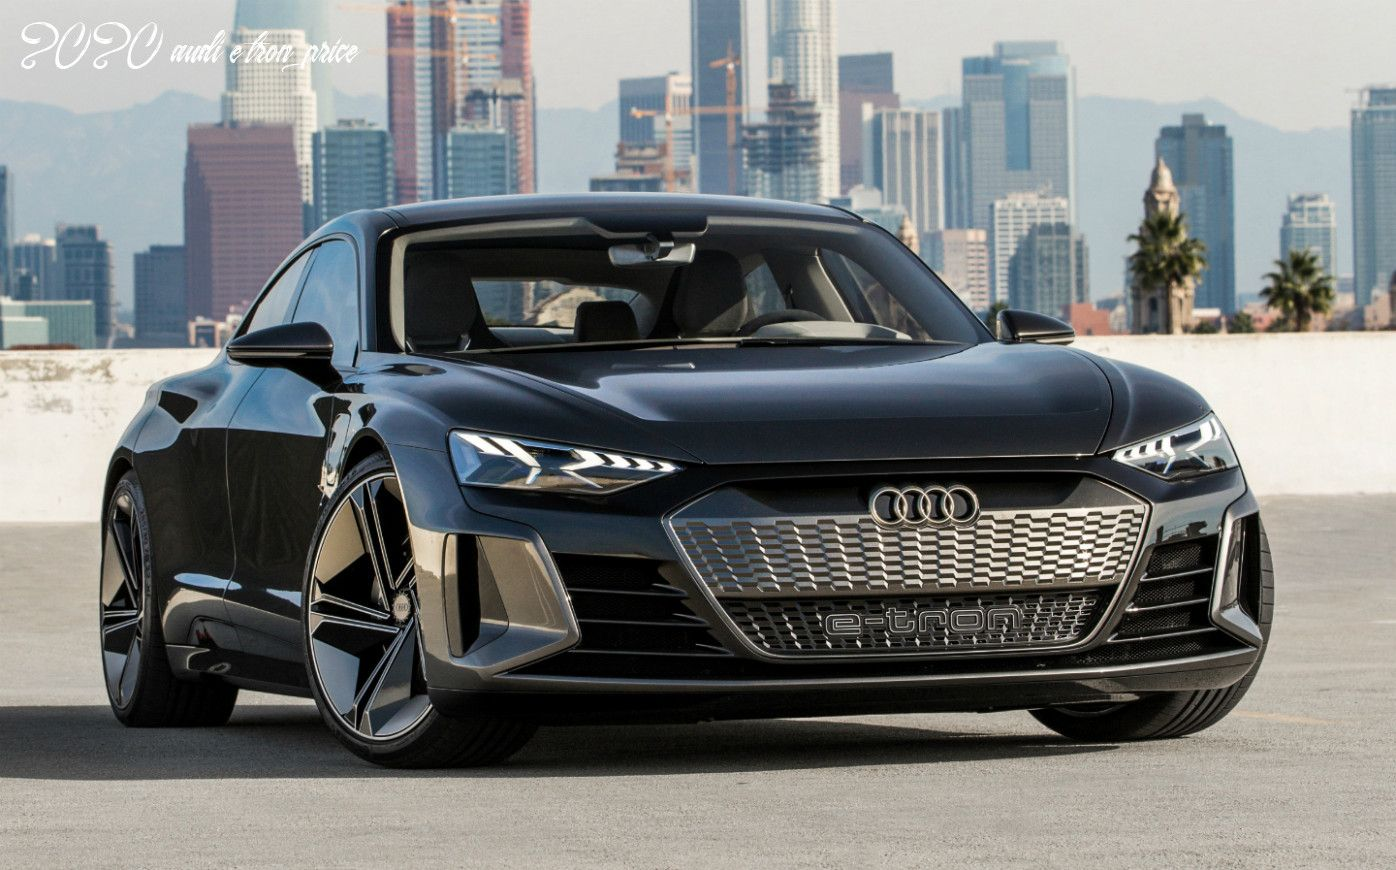 2020 Audi E Tron Price In 2020 Audi E Tron Audi Gt Audi Sports Car